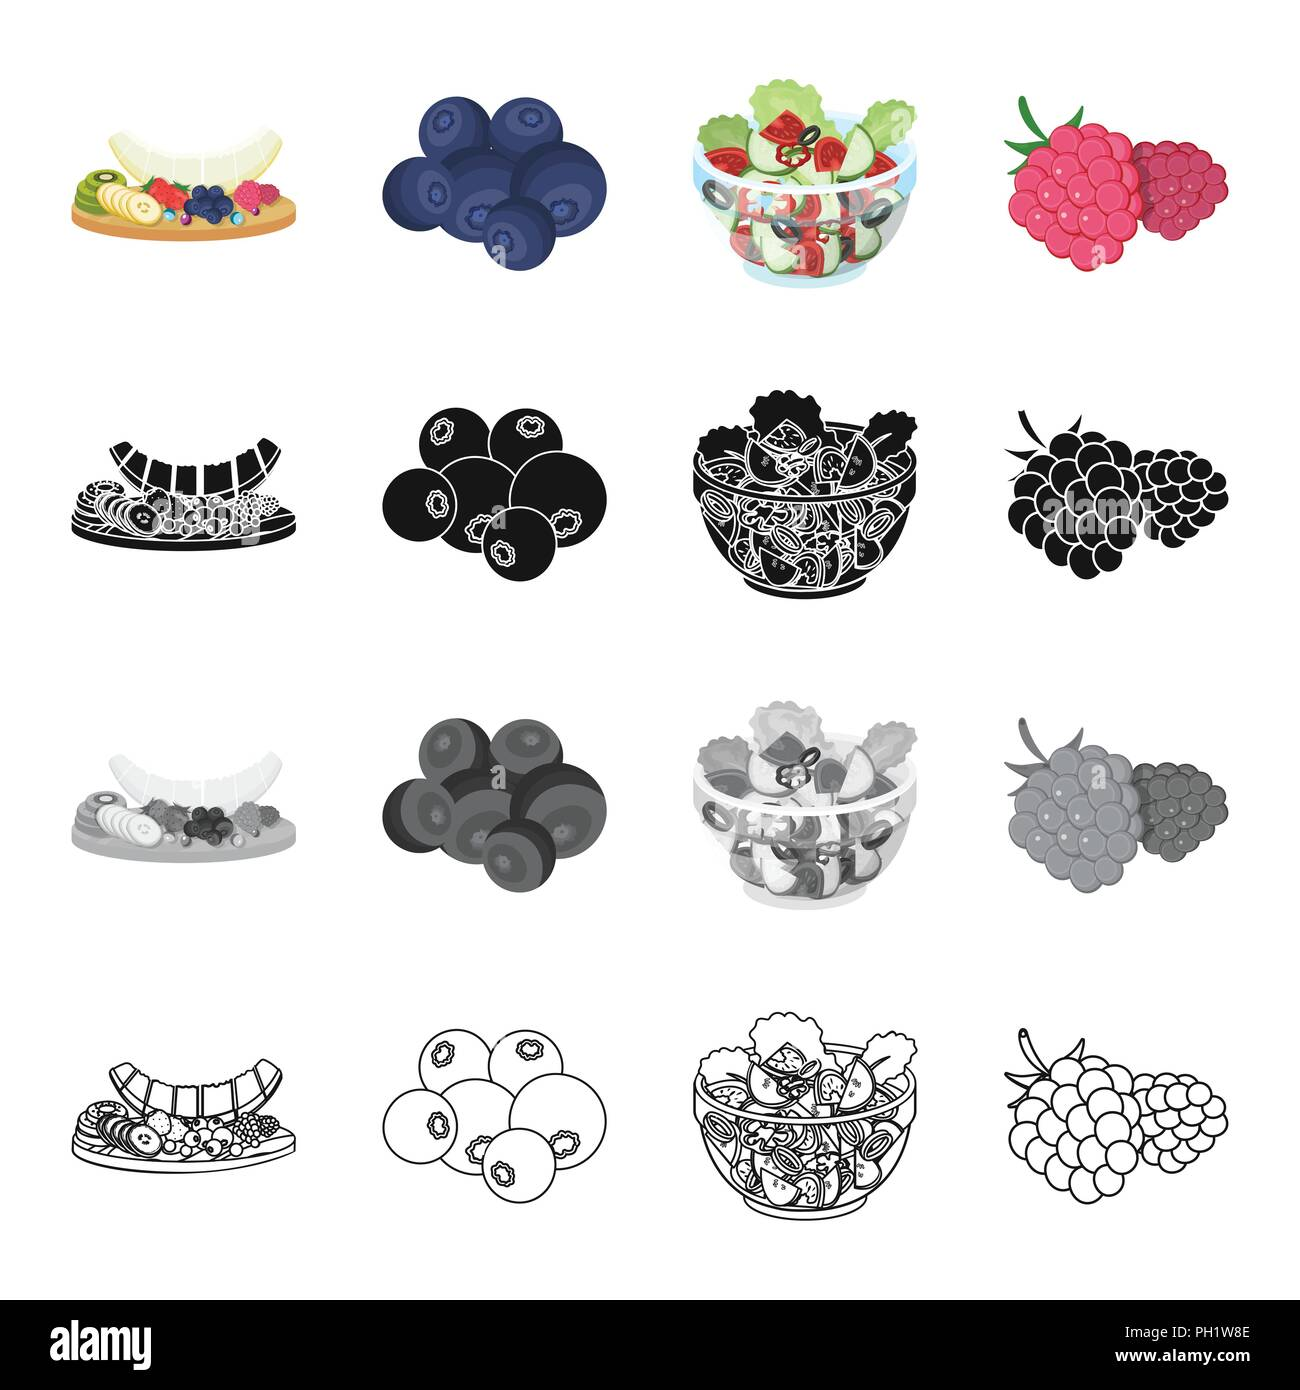 Cutting board with fruits, blueberries, raspberries, dessert, food, vegetable salad with vegetables. Fruit and dessert set collection icons in cartoon - Stock Vector